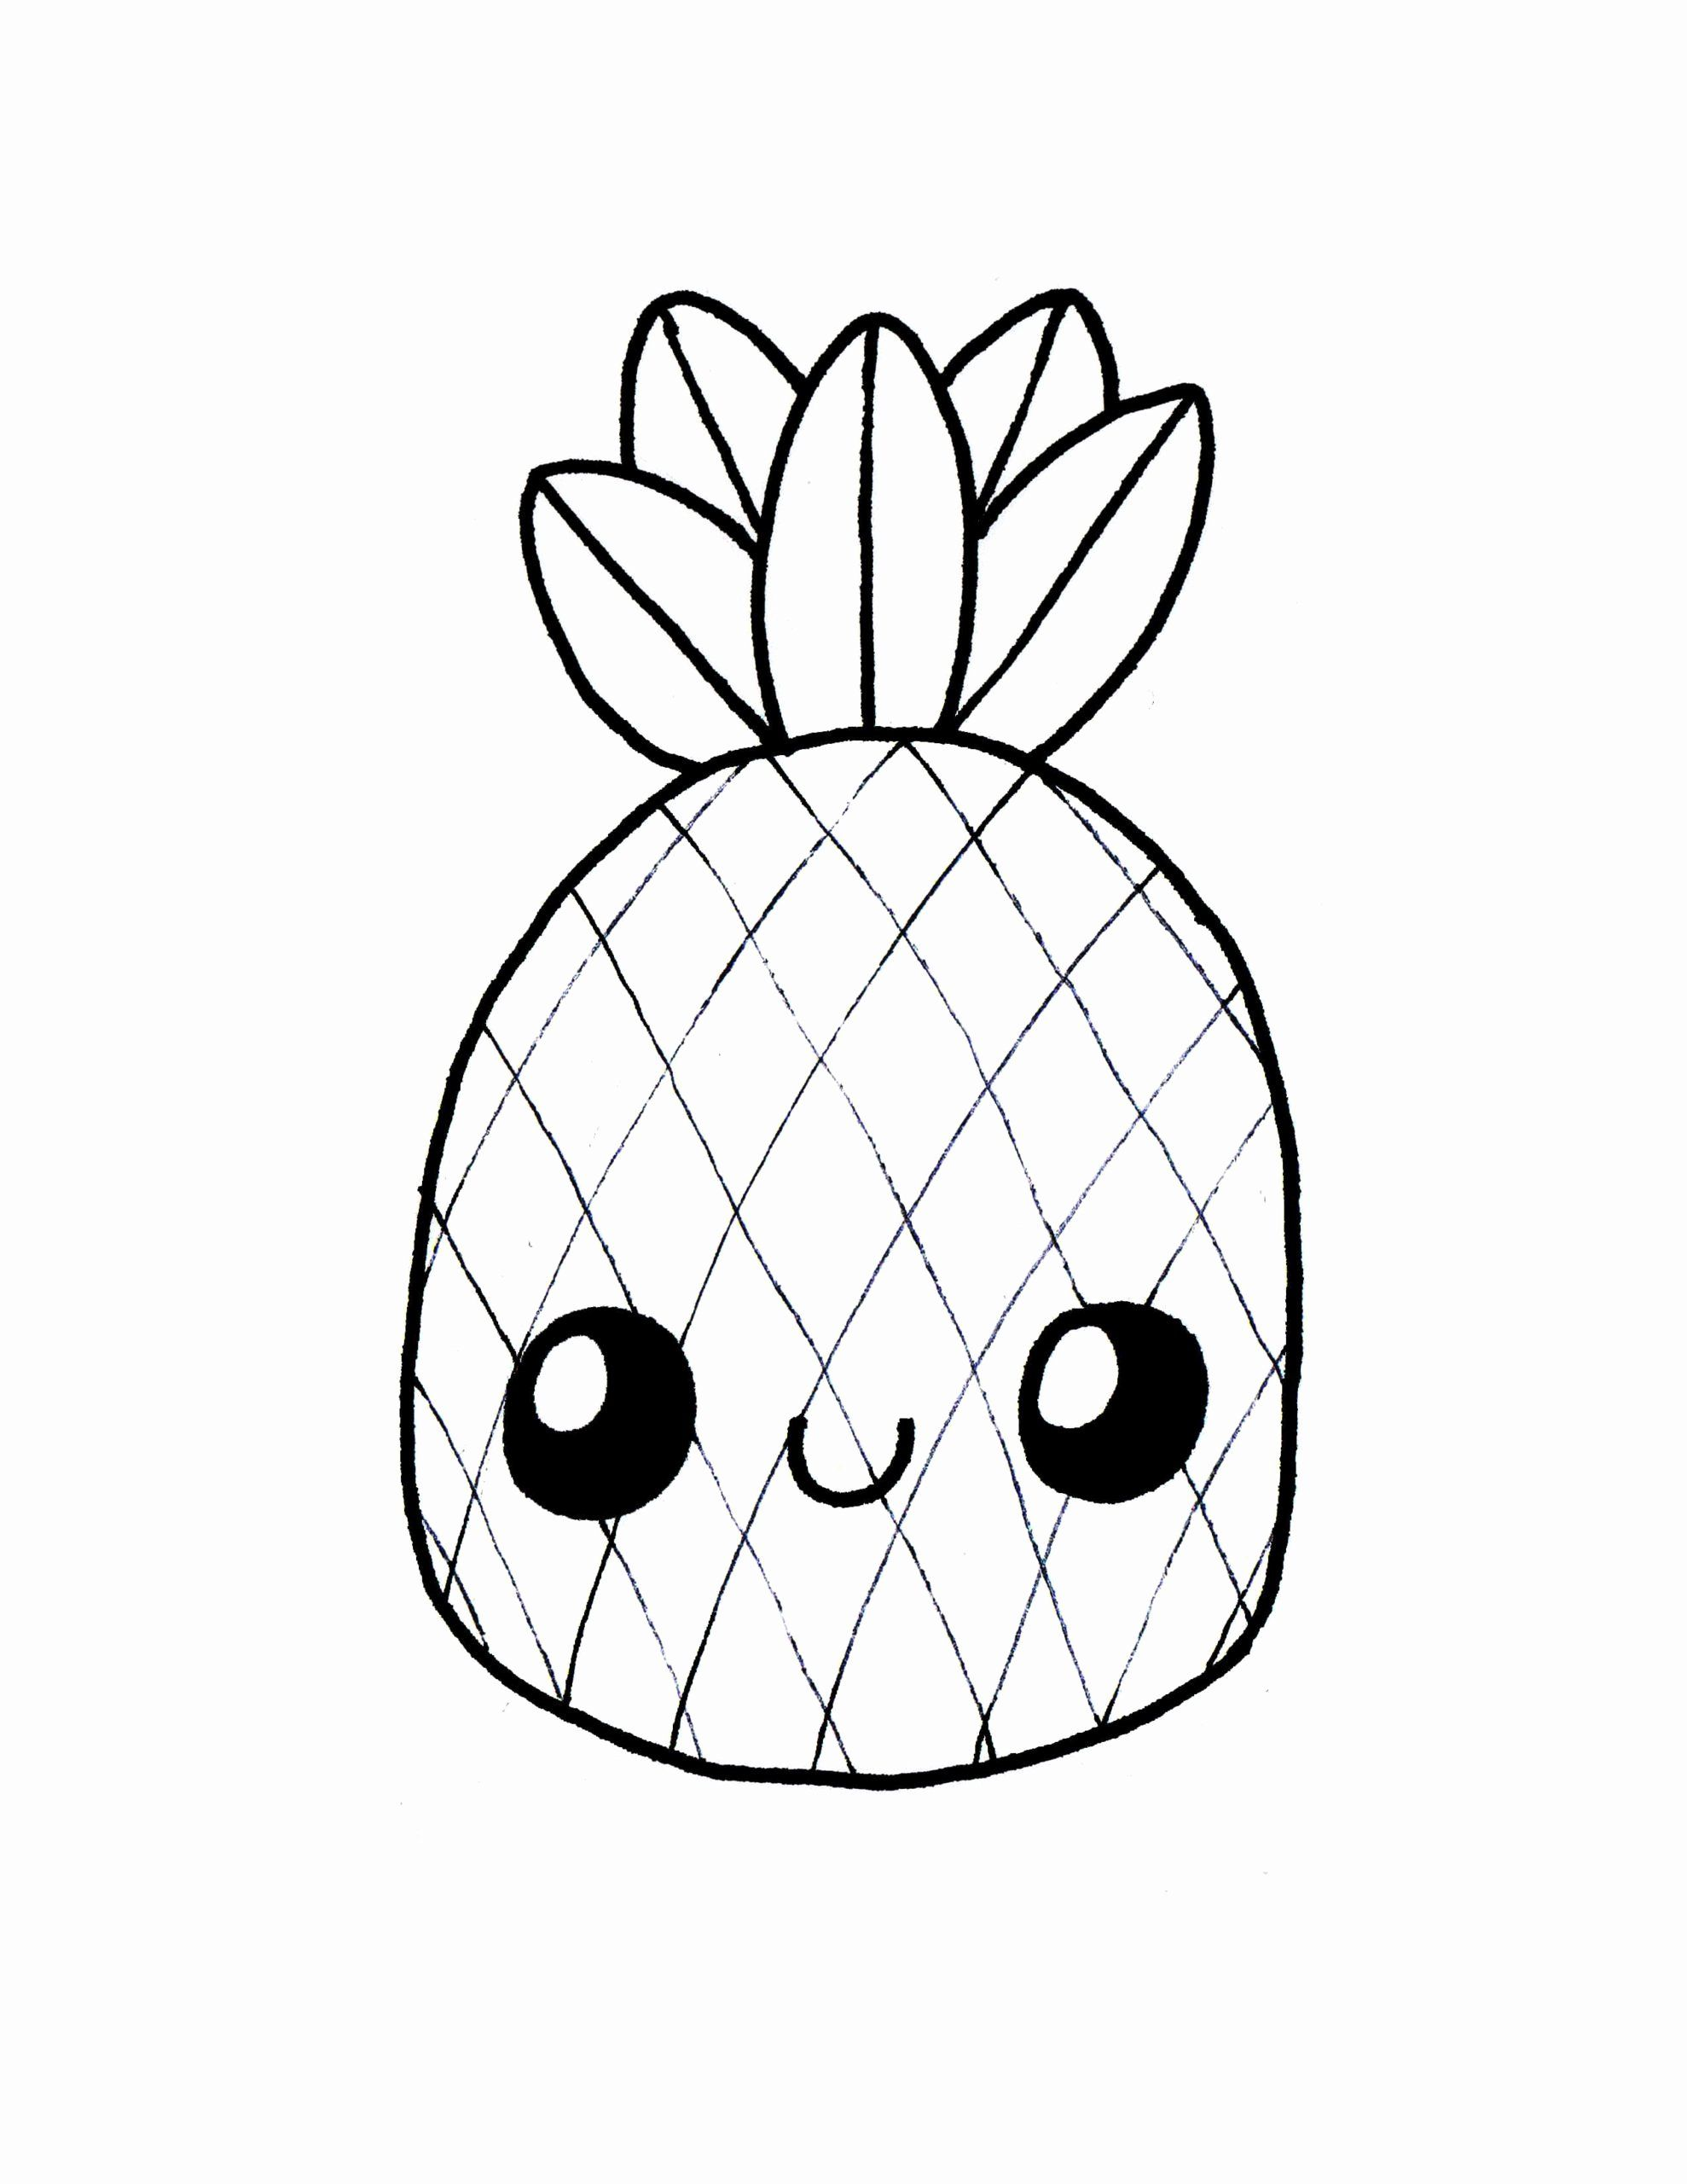 Disney Characters Printable Coloring Pages Unique Coloring Pages Kawaii Coloring Print Unusual Cha Desenhos Kawaii Desenhos Kawaii Tumblr Kawaii Desenhos Fofos